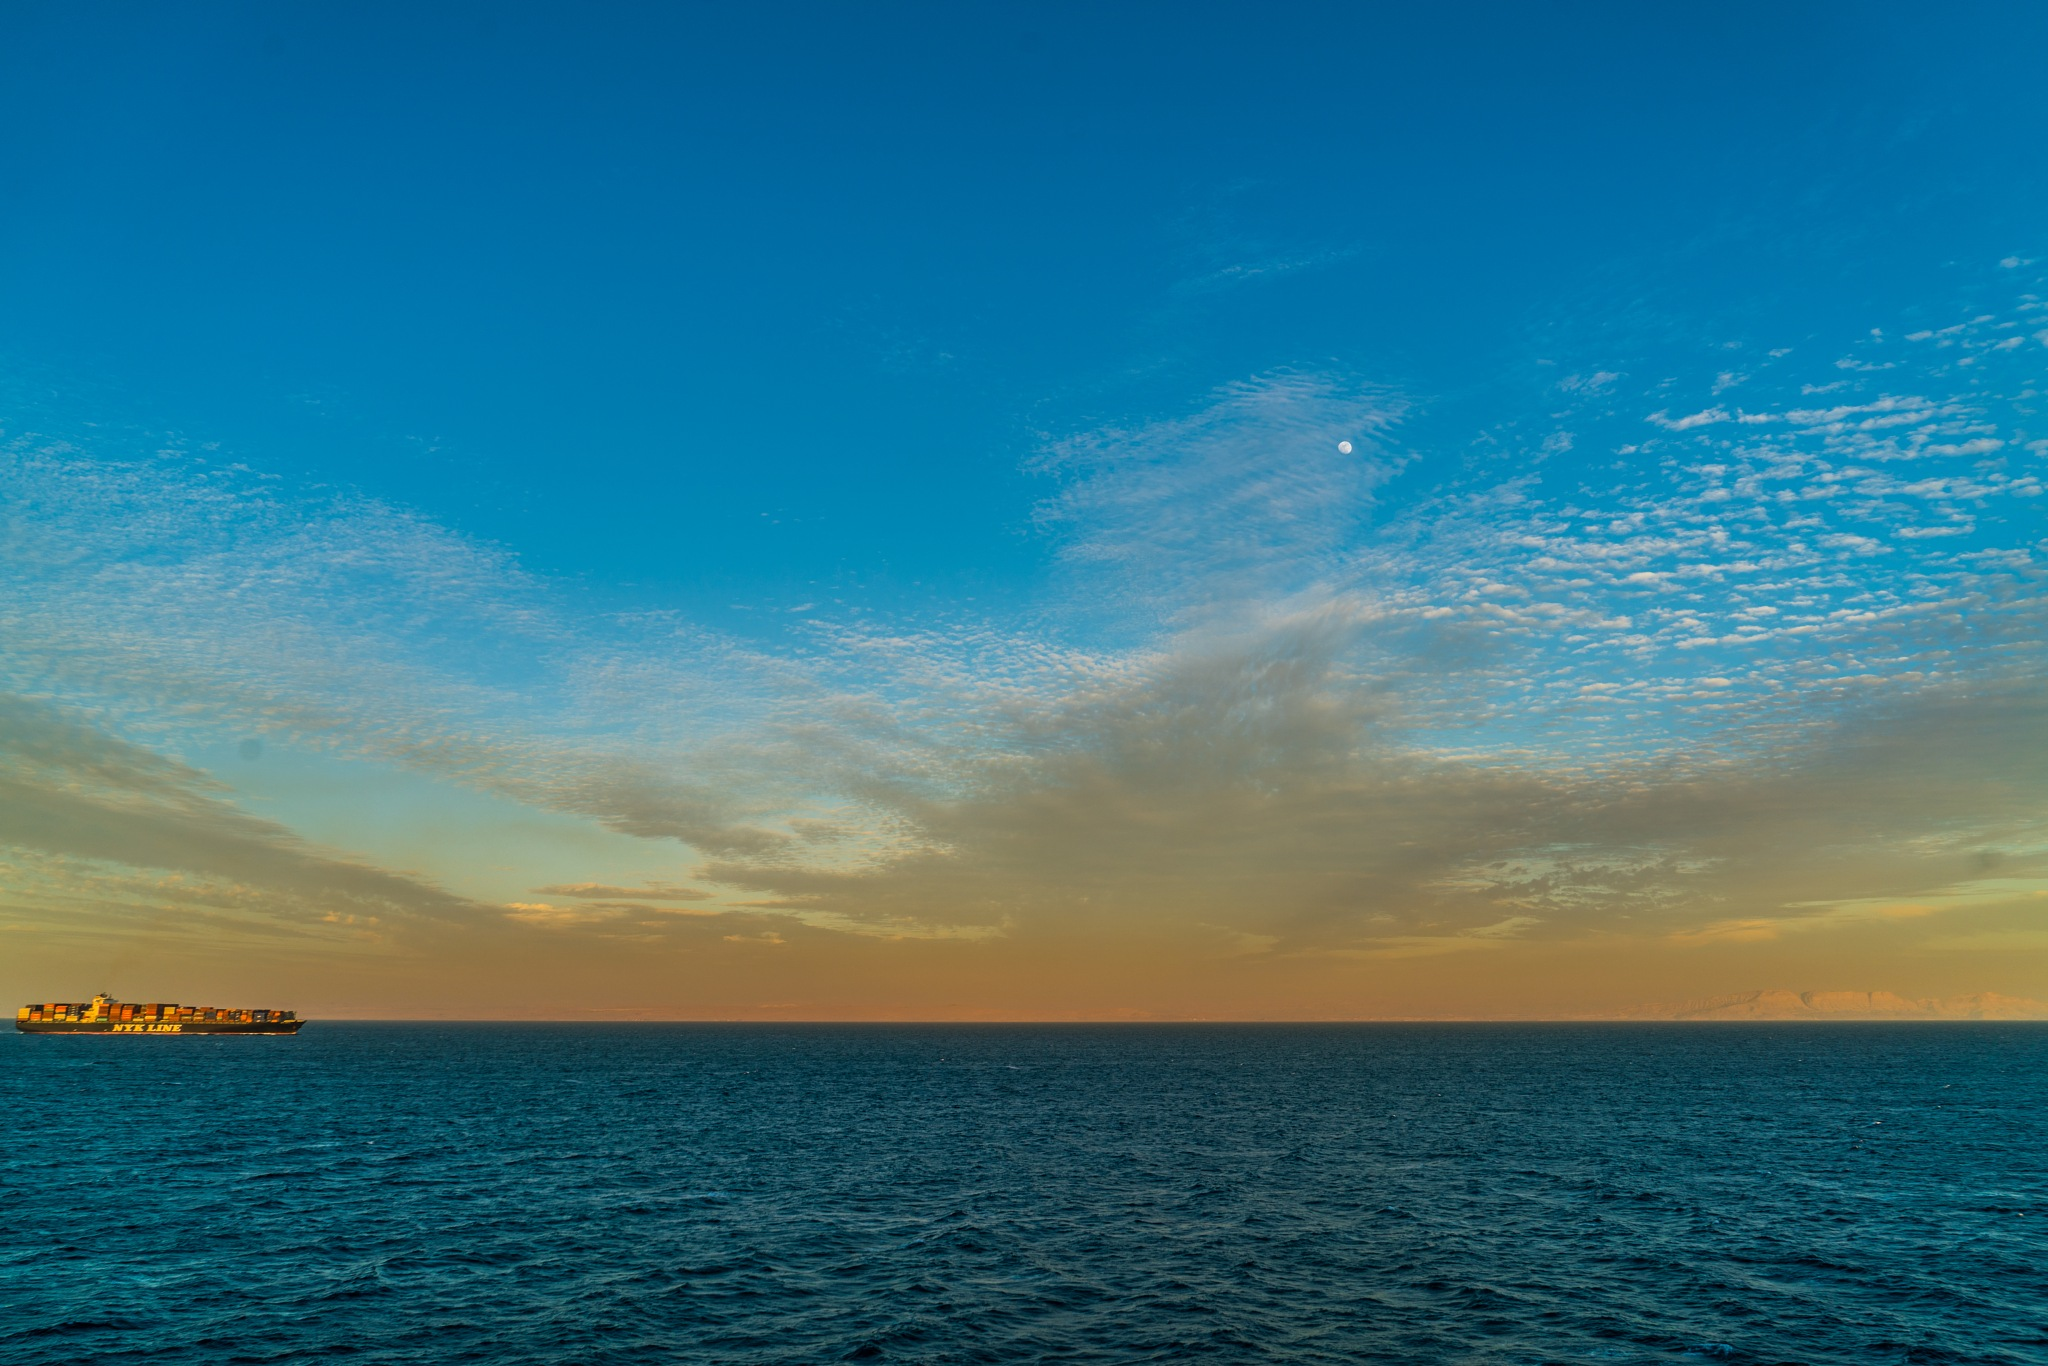 Leaving the Suez Canal by BernArt Photography